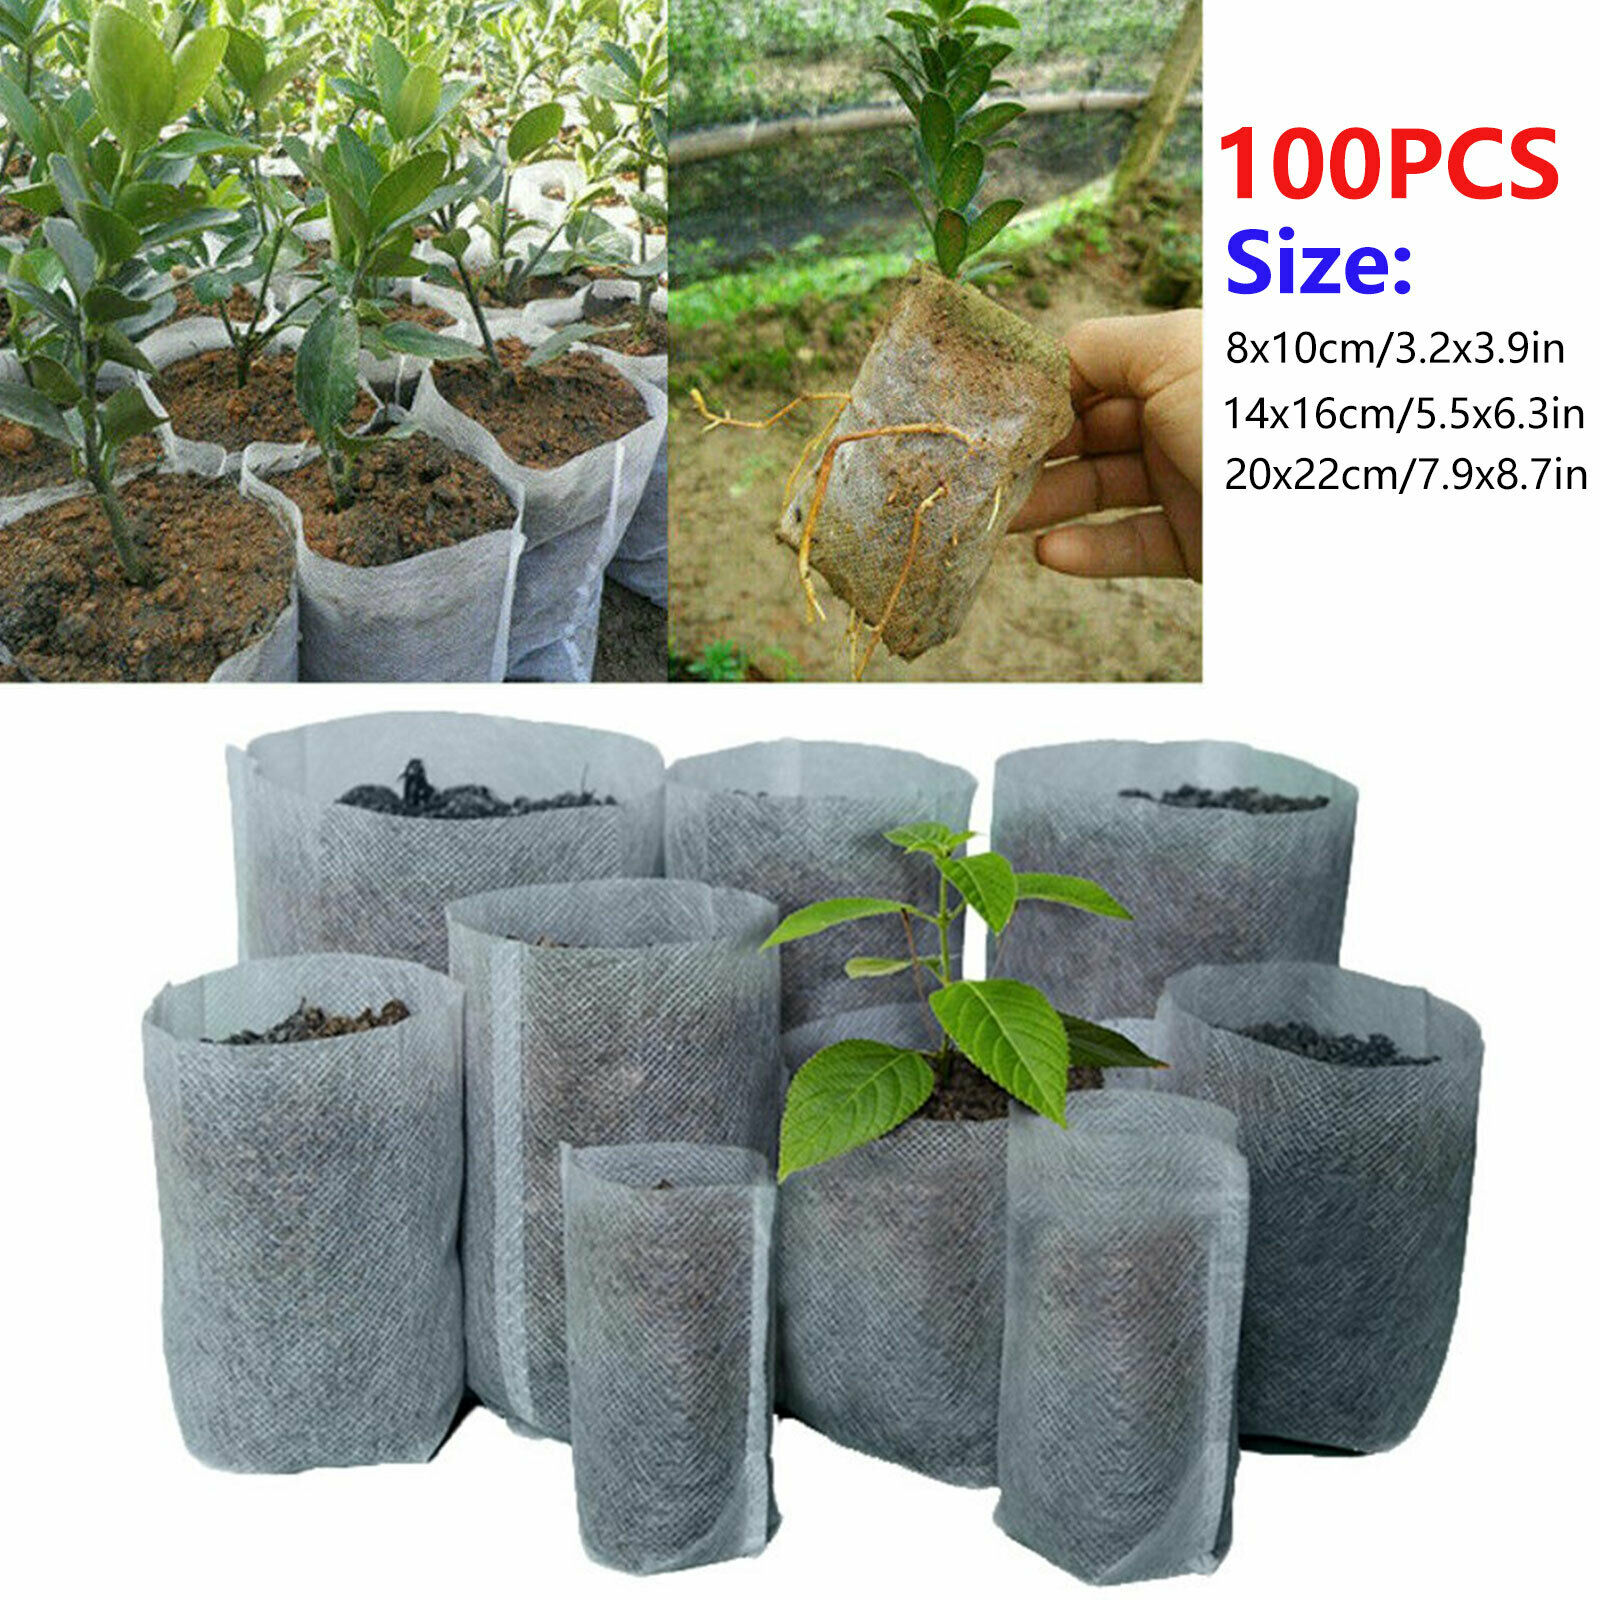 Biodegradable Non-woven Nursery Bags Plant Grow Bags Fabric Pots Pouch 100Pcs A